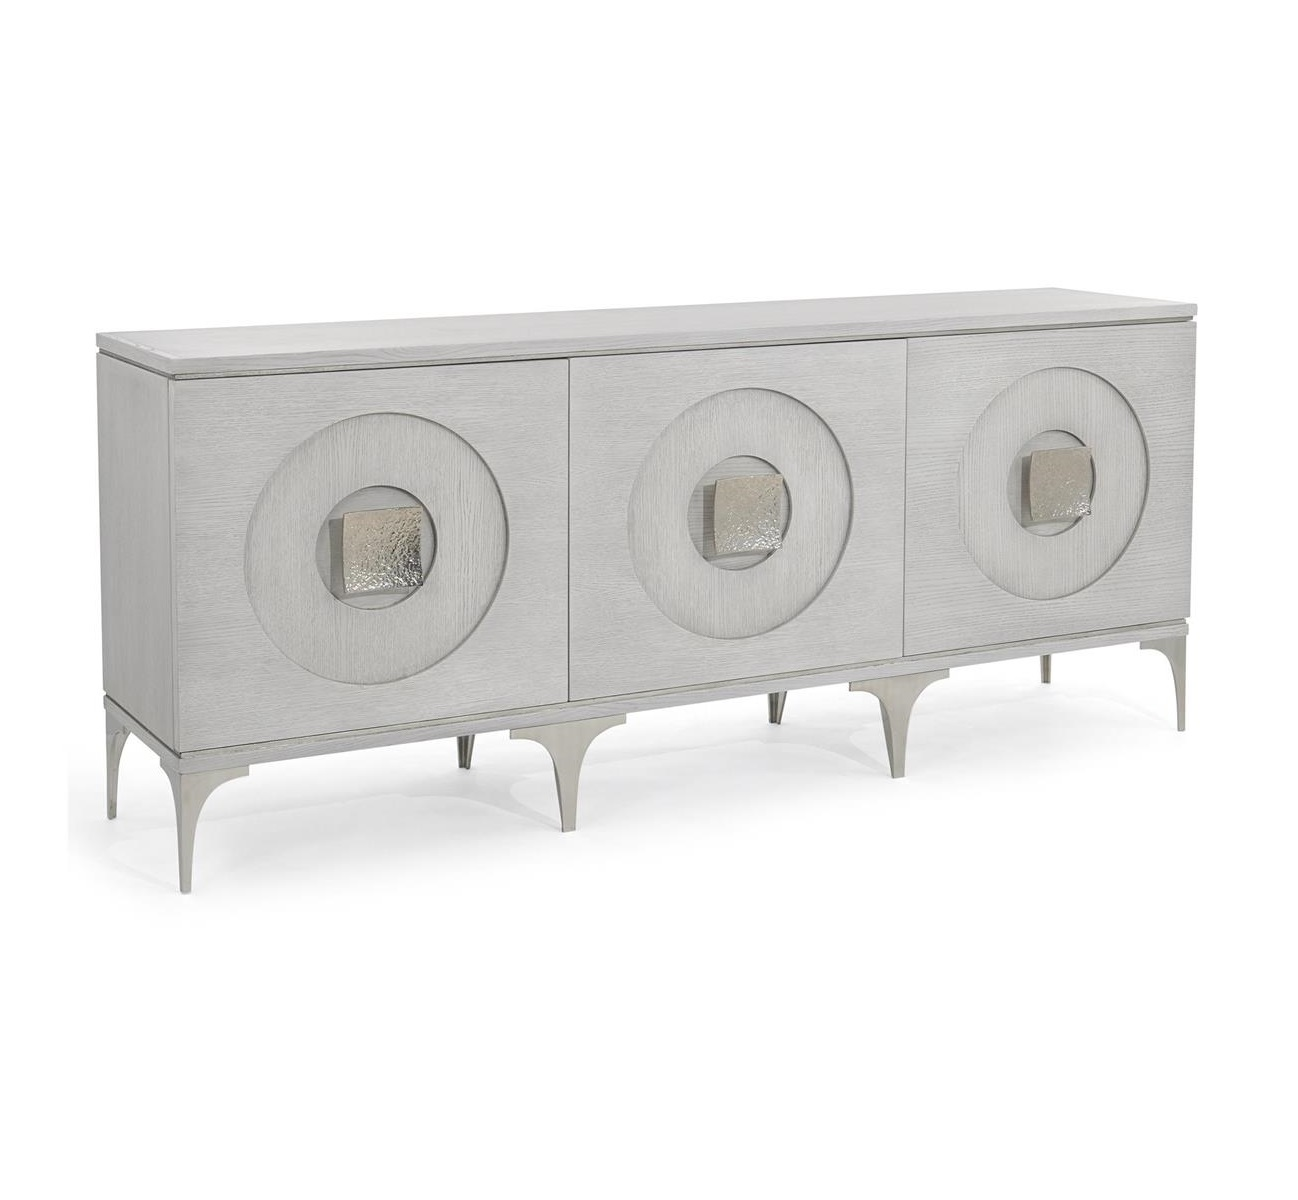 Belluno Sideboard,  John Richard Sideboard, Brooklyn, New York, Furniture by ABD